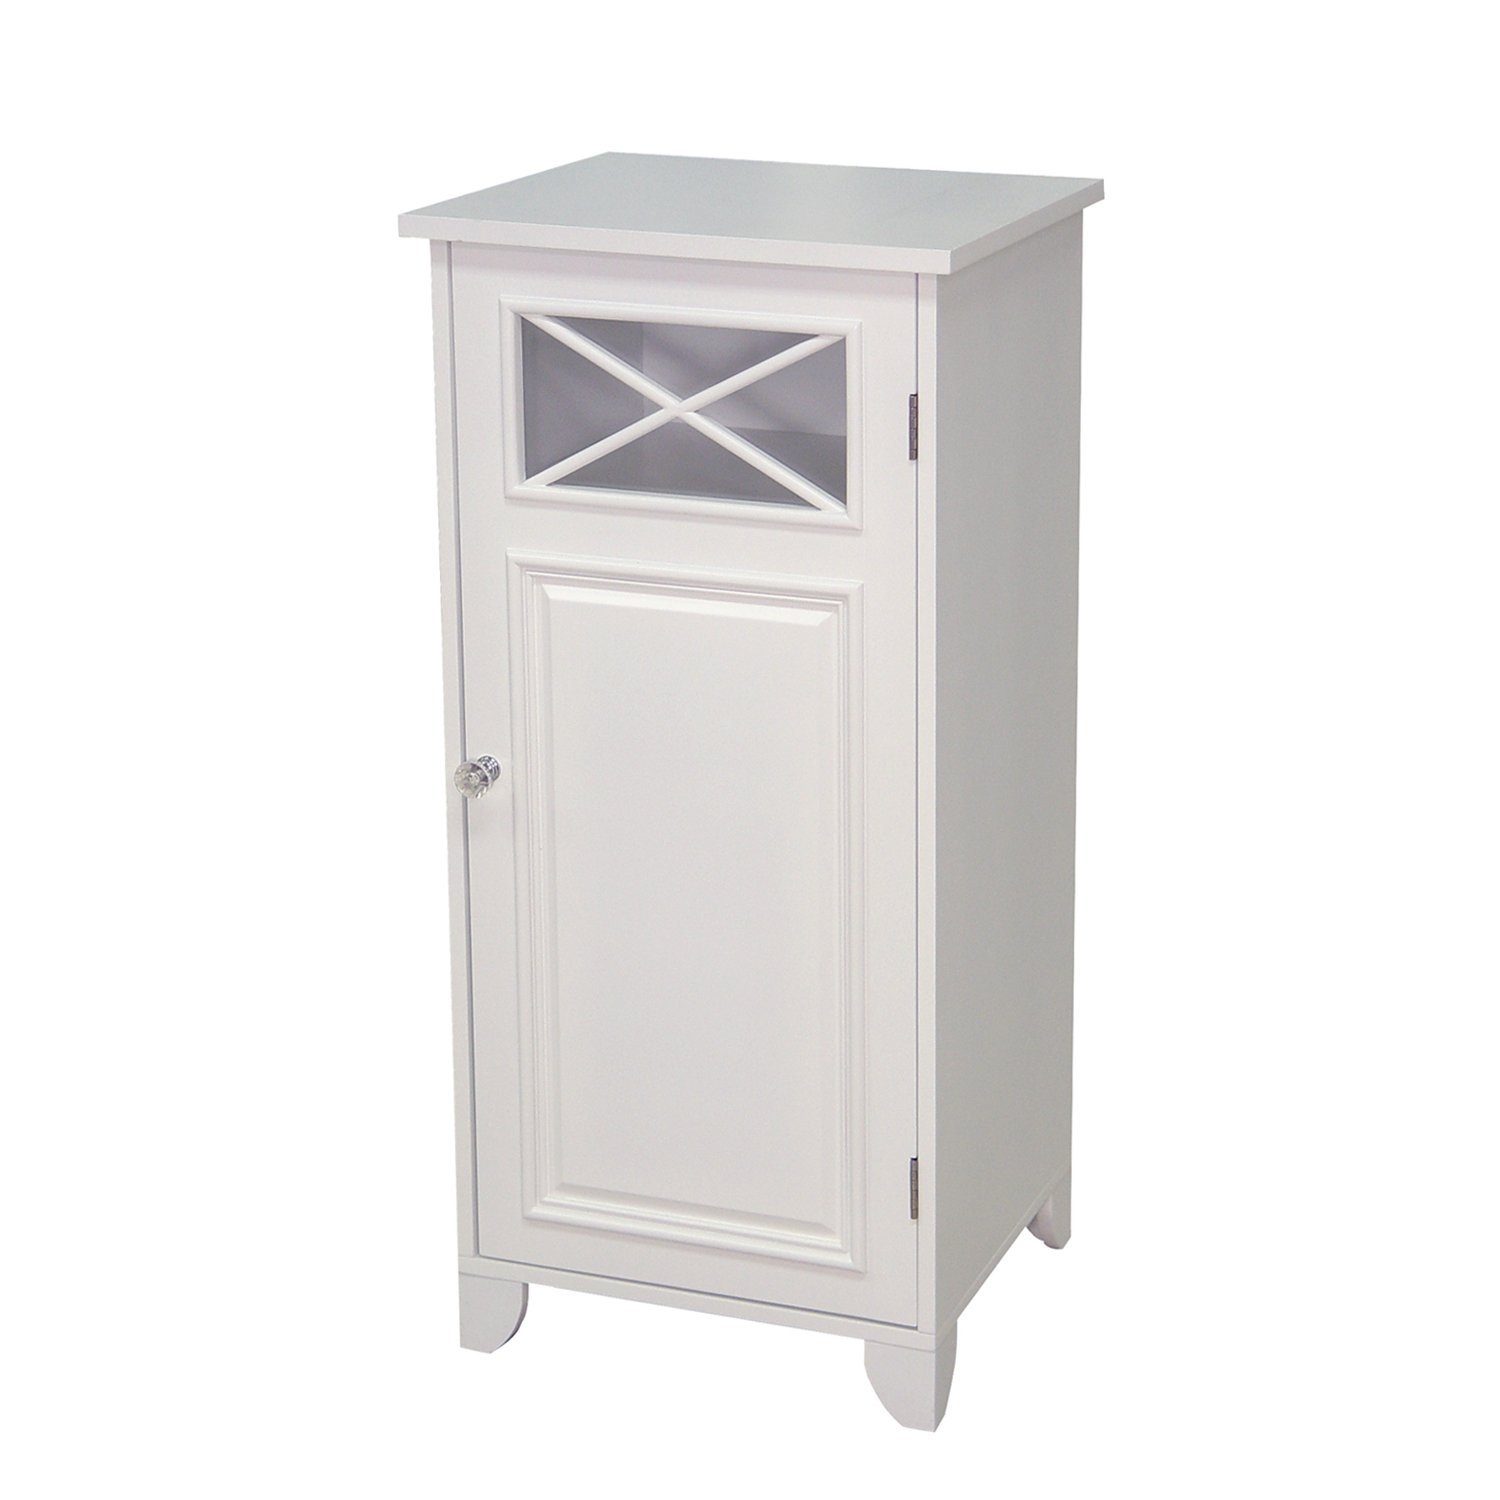 Beau Bathroom Floor Cabinet With Single Door